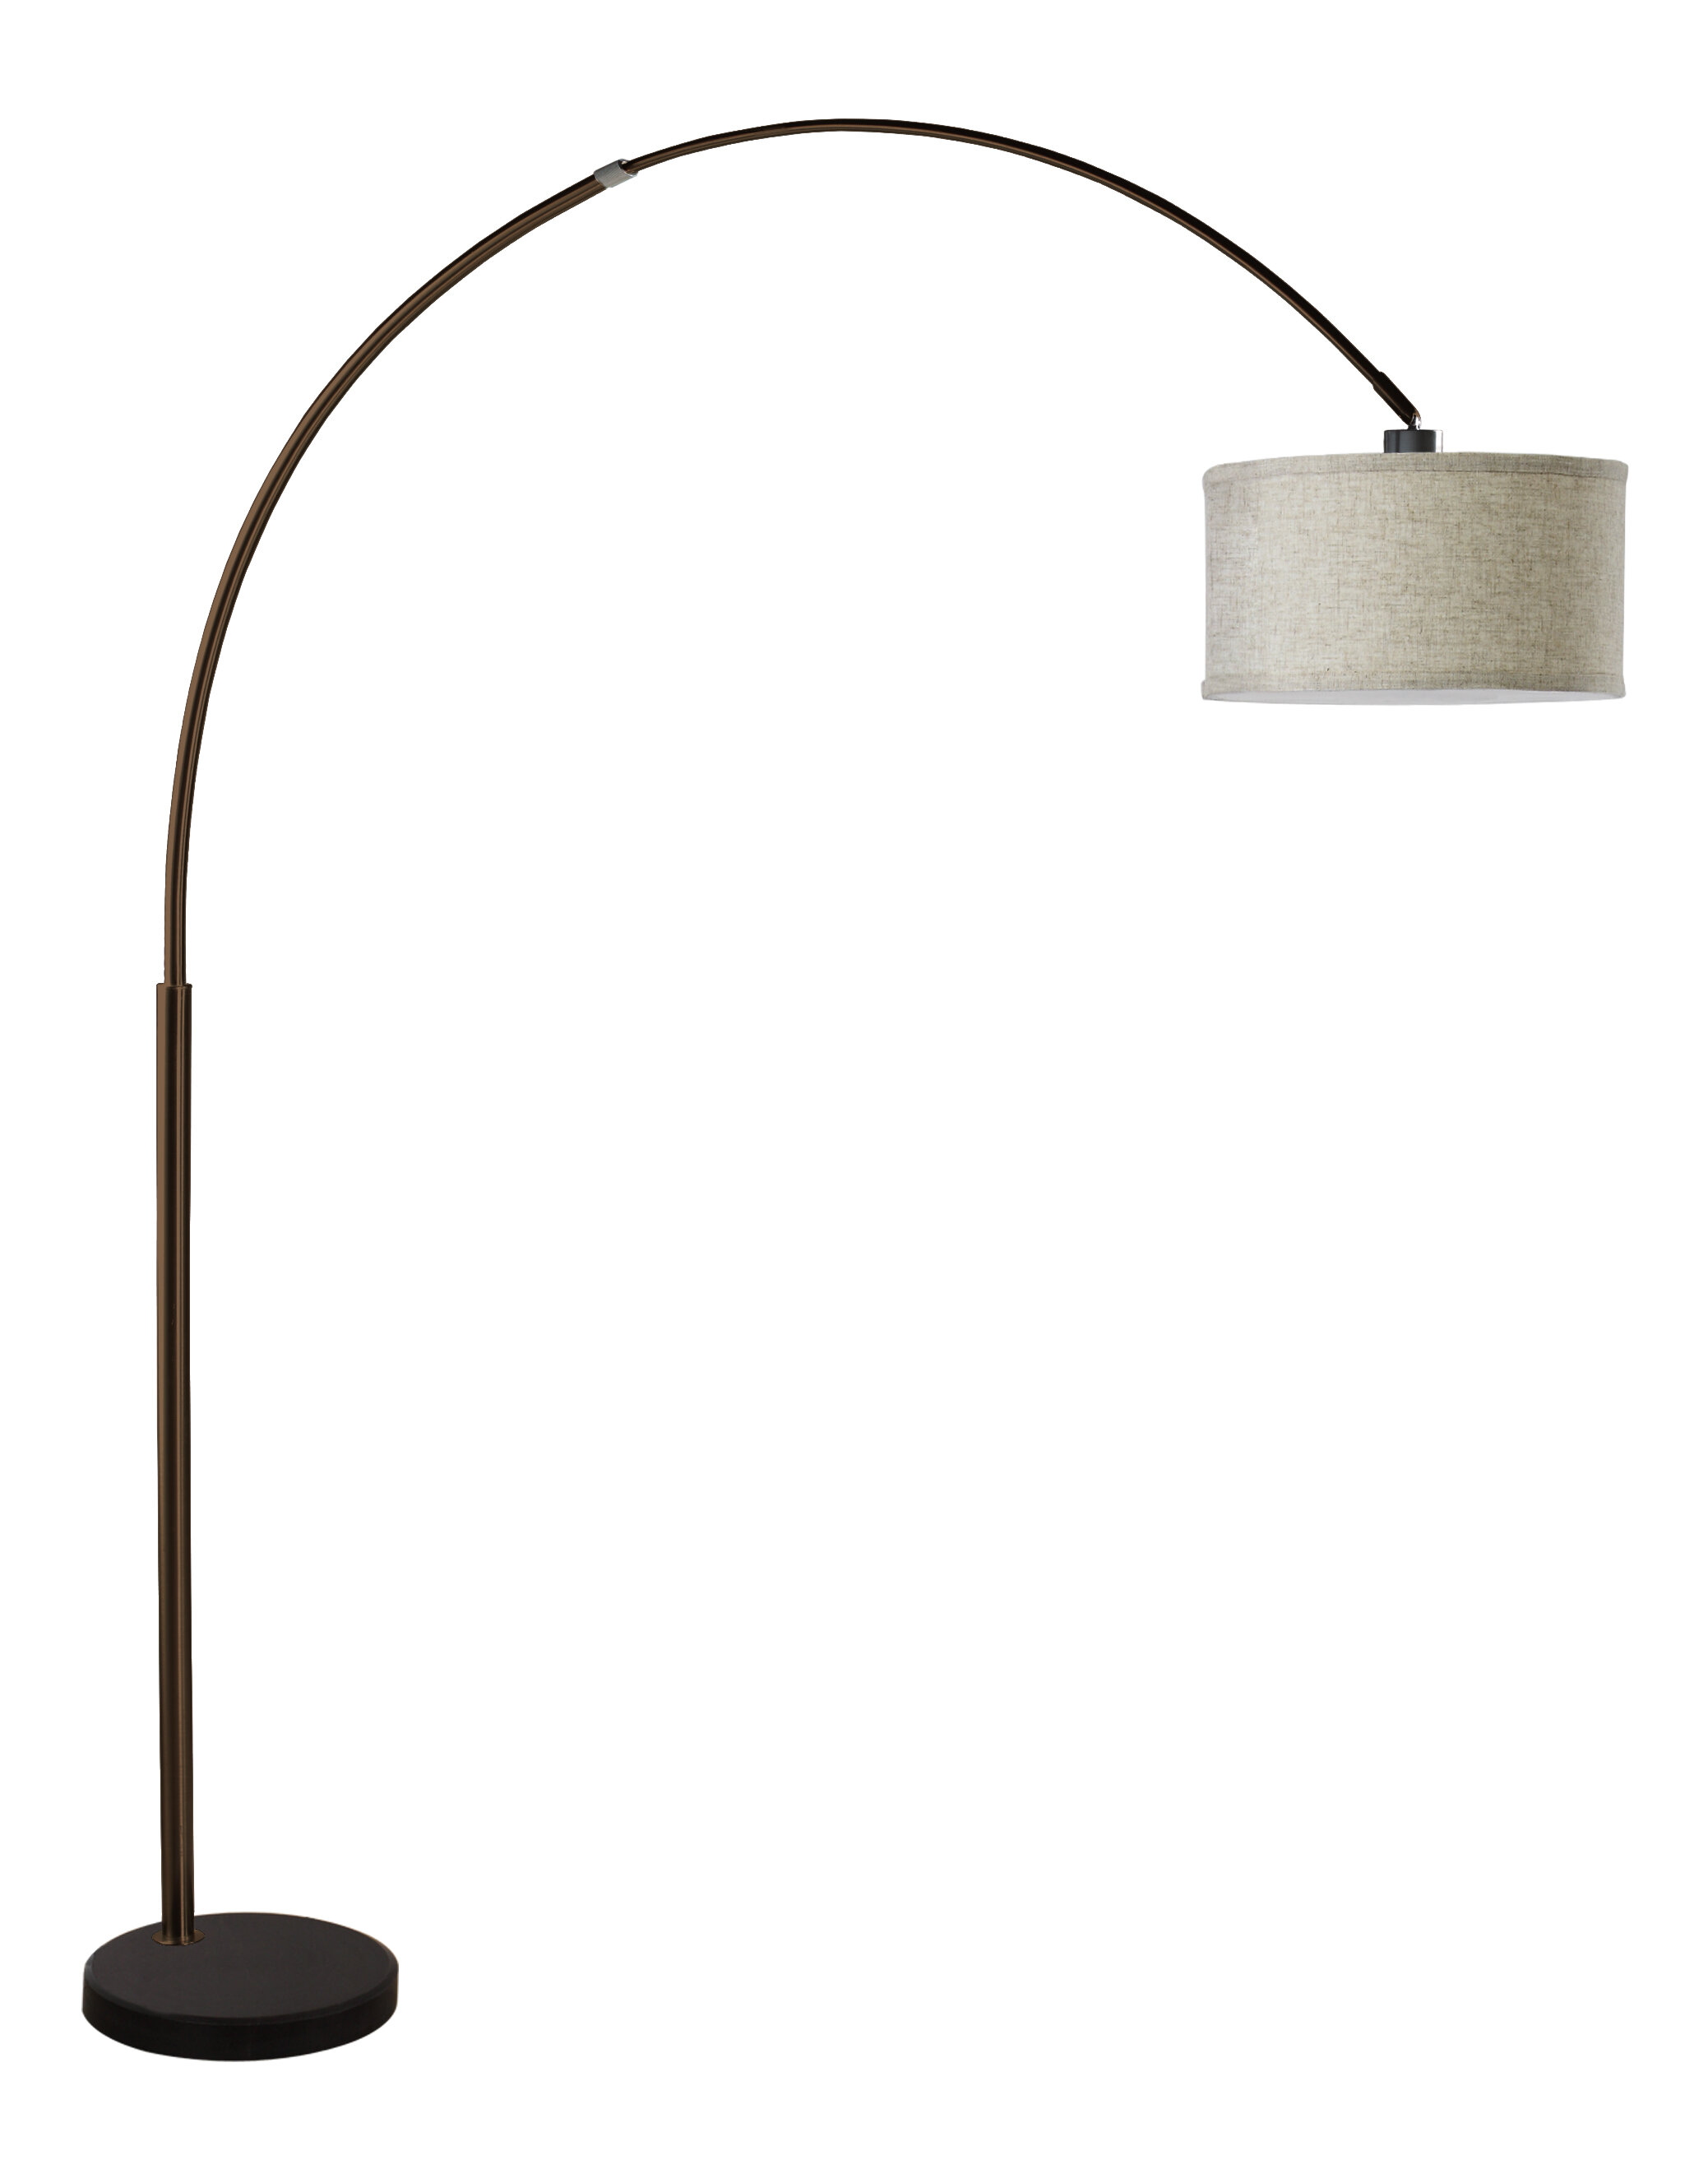 bronze frame modern curated base steel lamps shades lamp floor collection all our light of categories or square explore